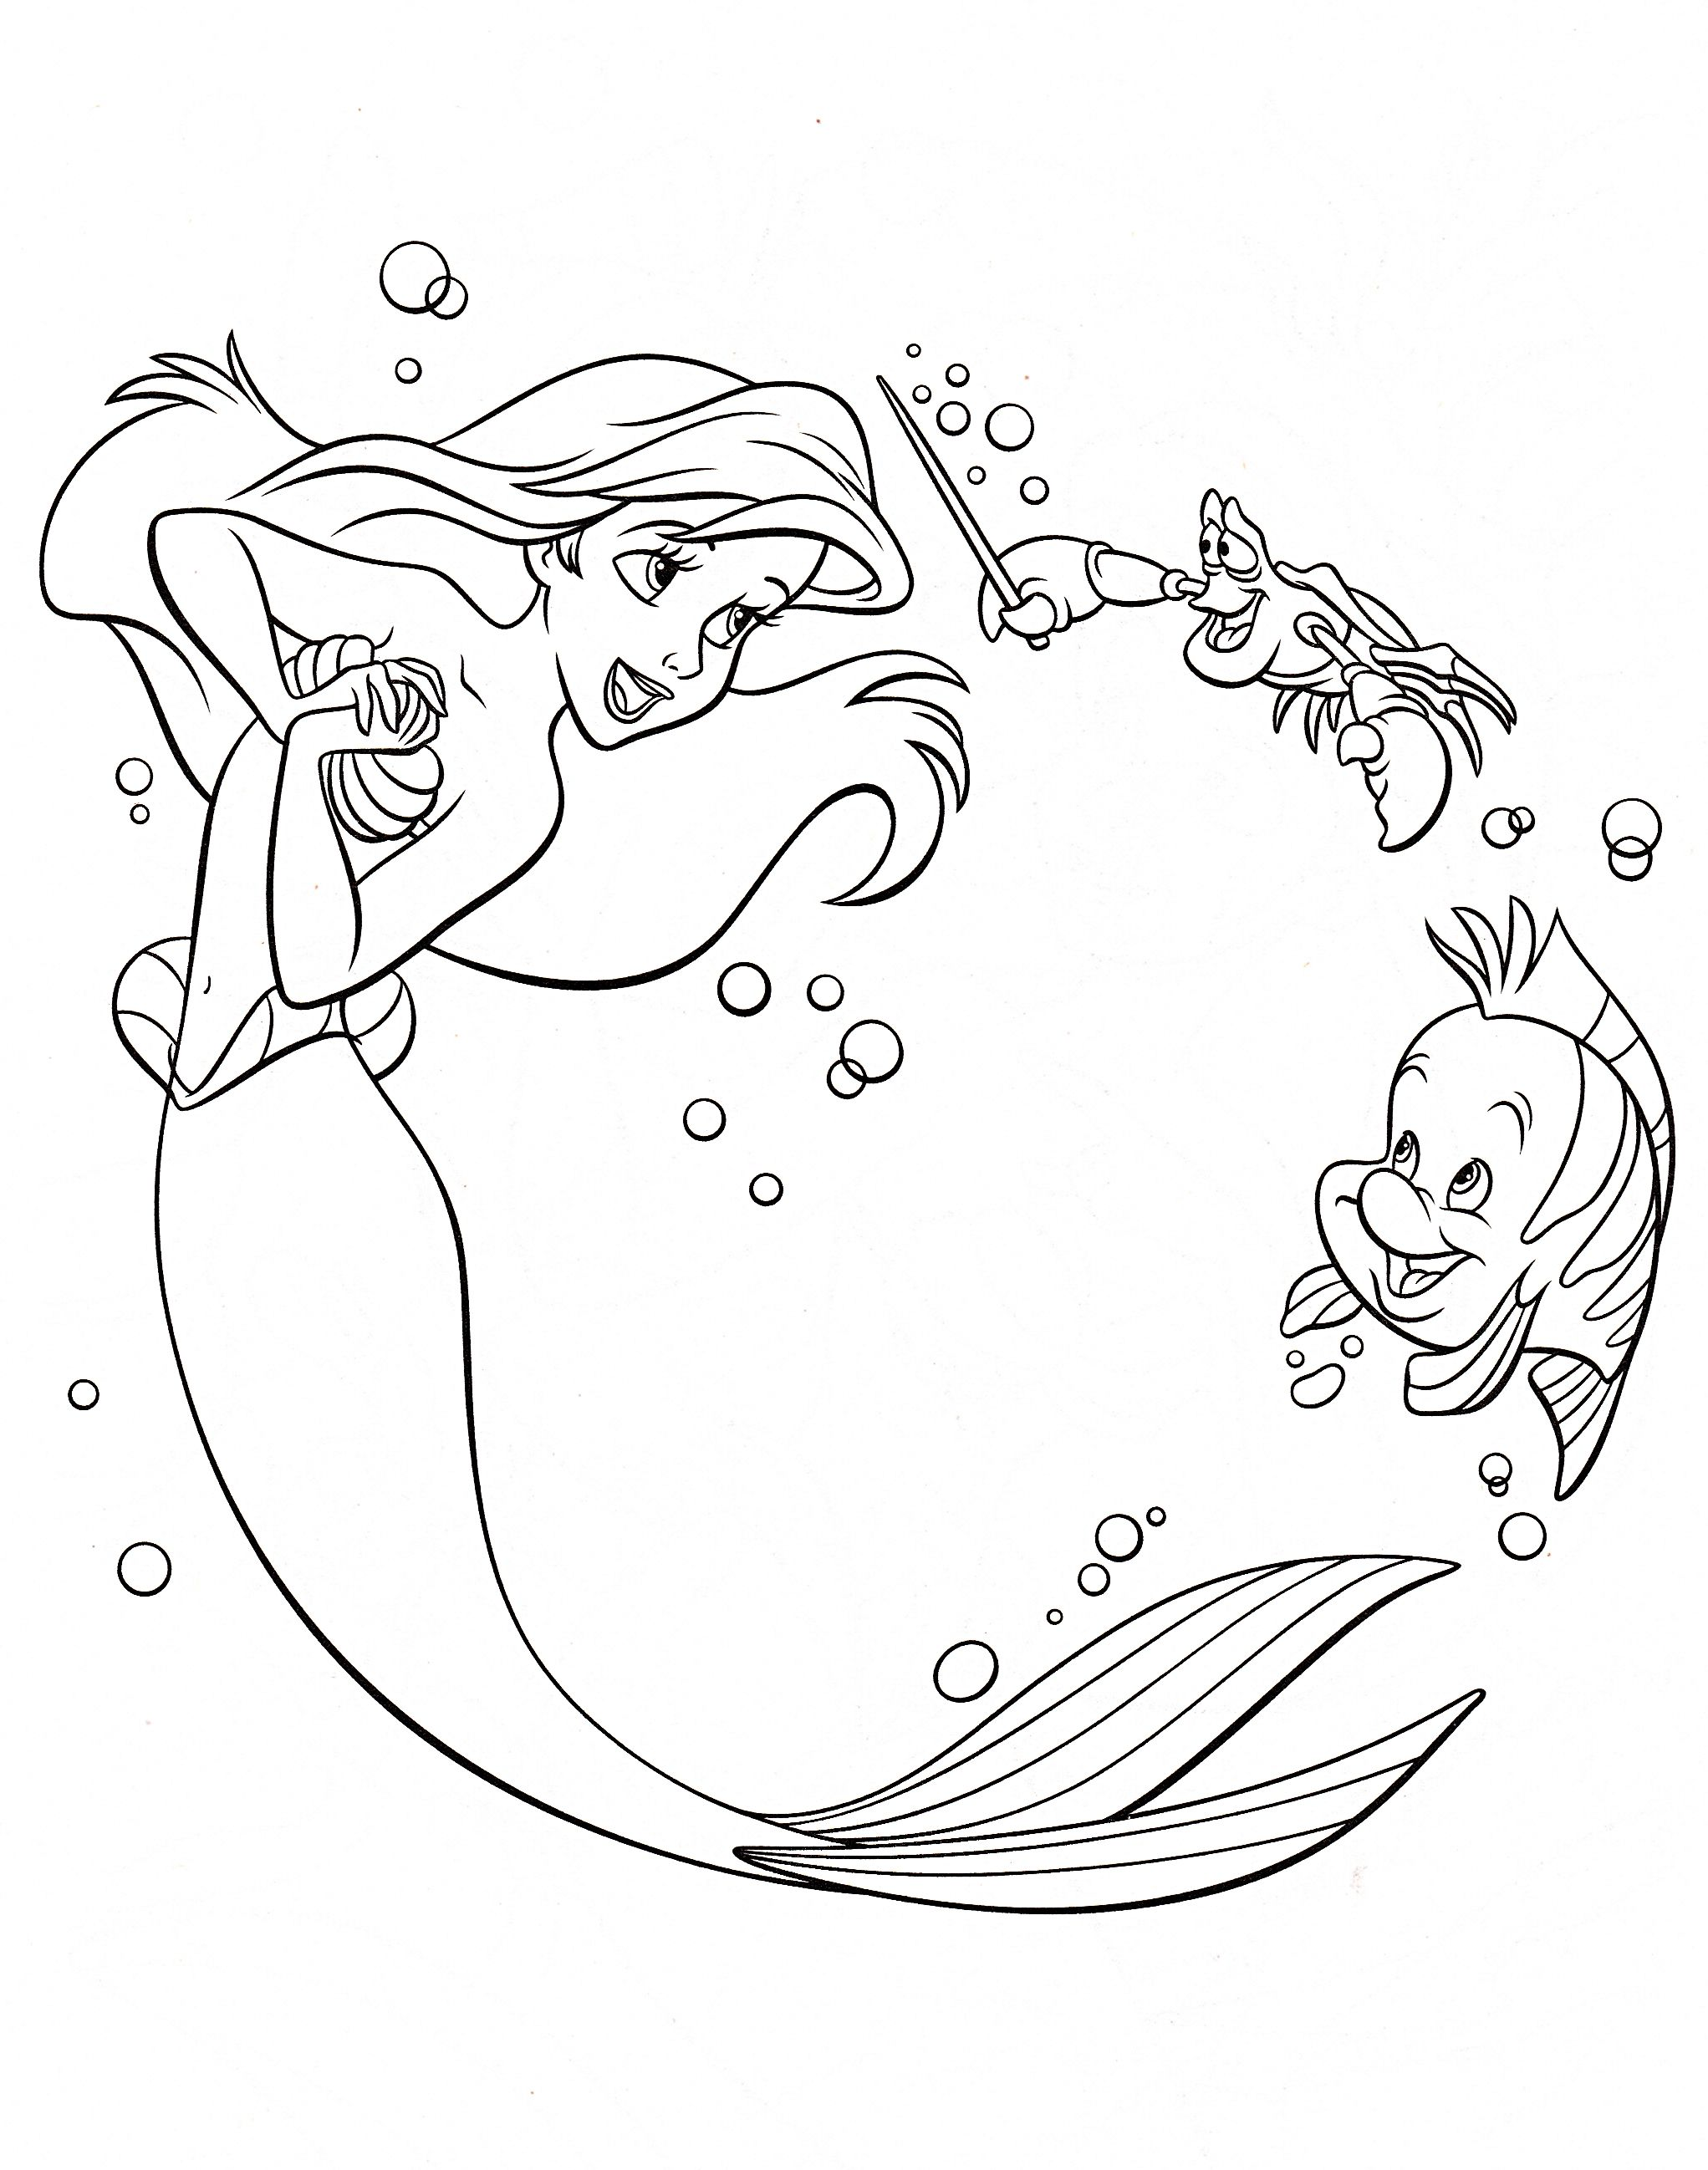 Photo of Walt Disney Coloring Pages - Princess Ariel, Sebastian ...